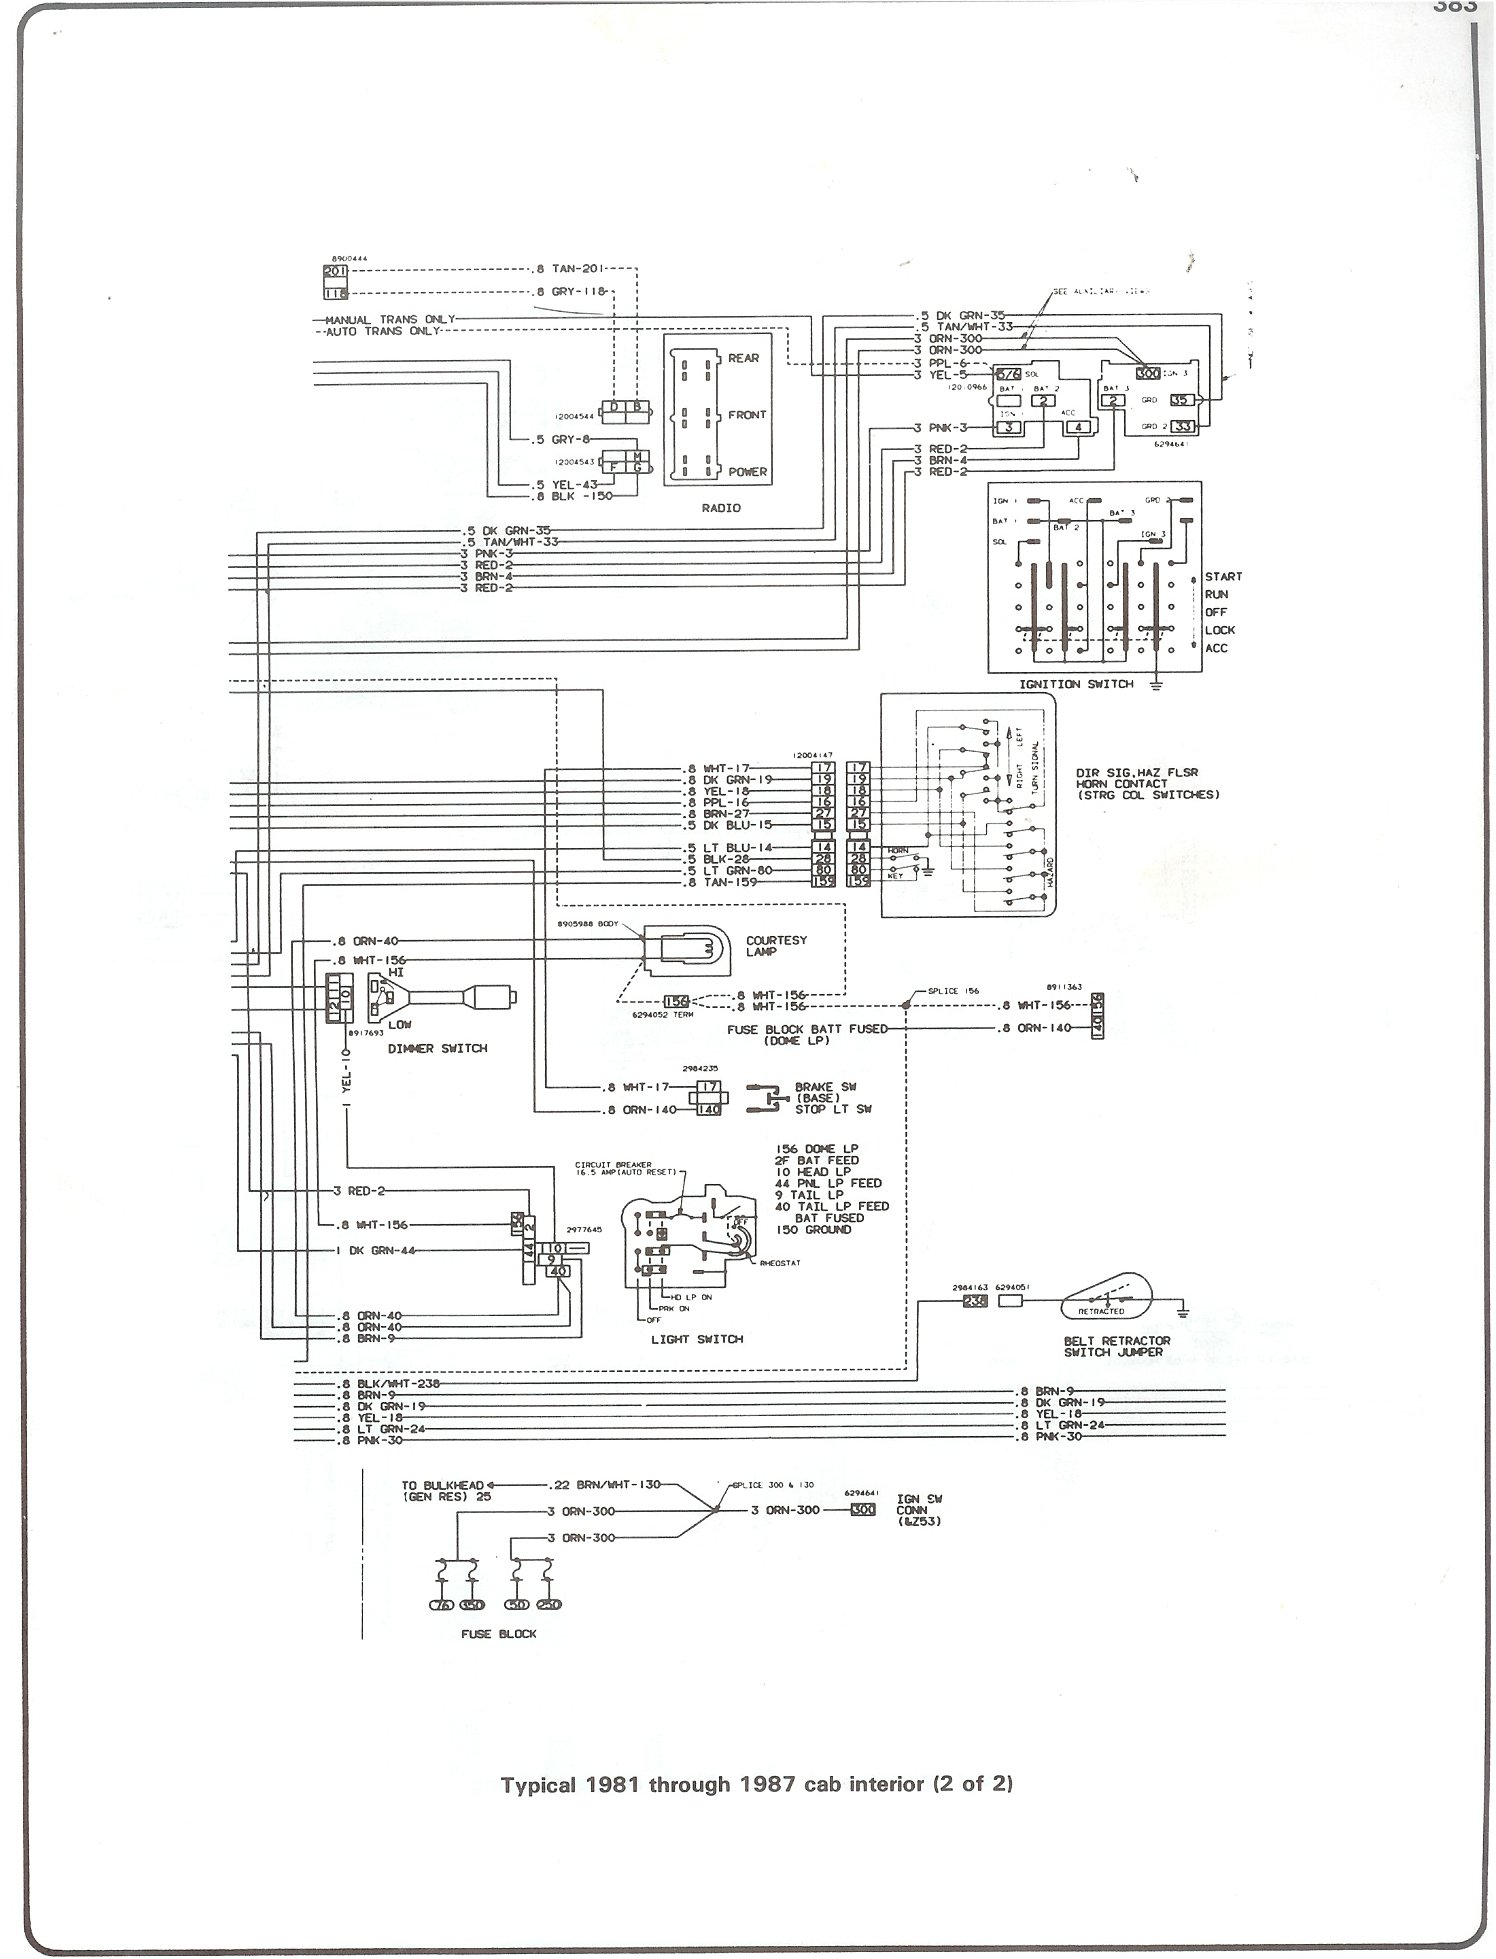 Complete 73 87 Wiring Diagrams 2001 Ford Mustang Power Window Diagram 81 Cab Interior Page 2